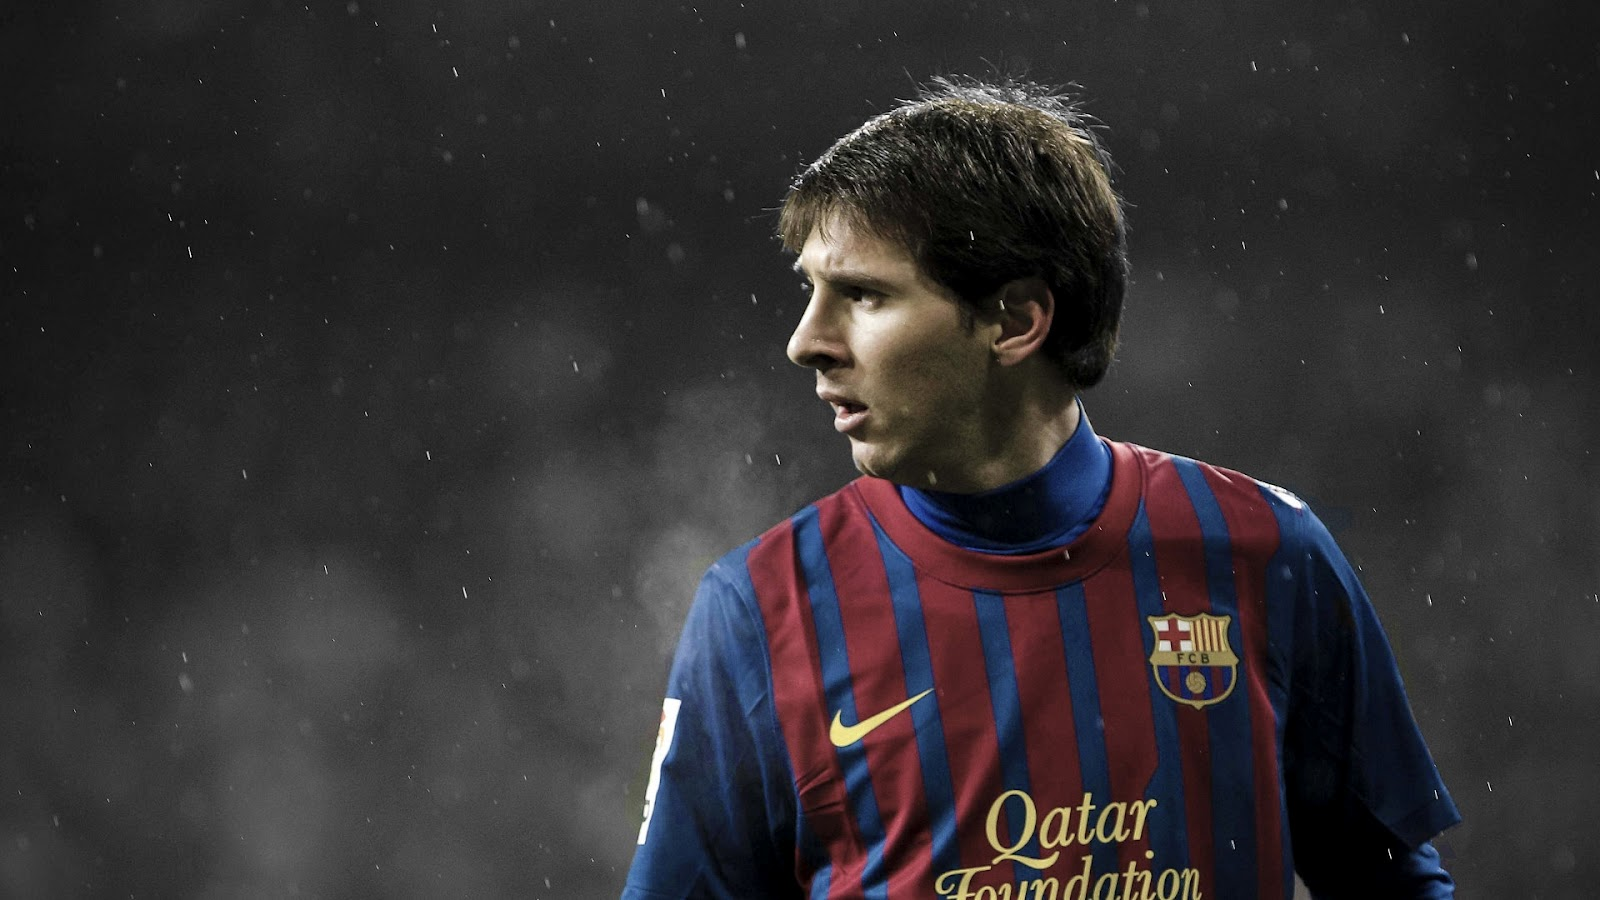 Football Wallpapers: Lionel Messi HD Wallpapers